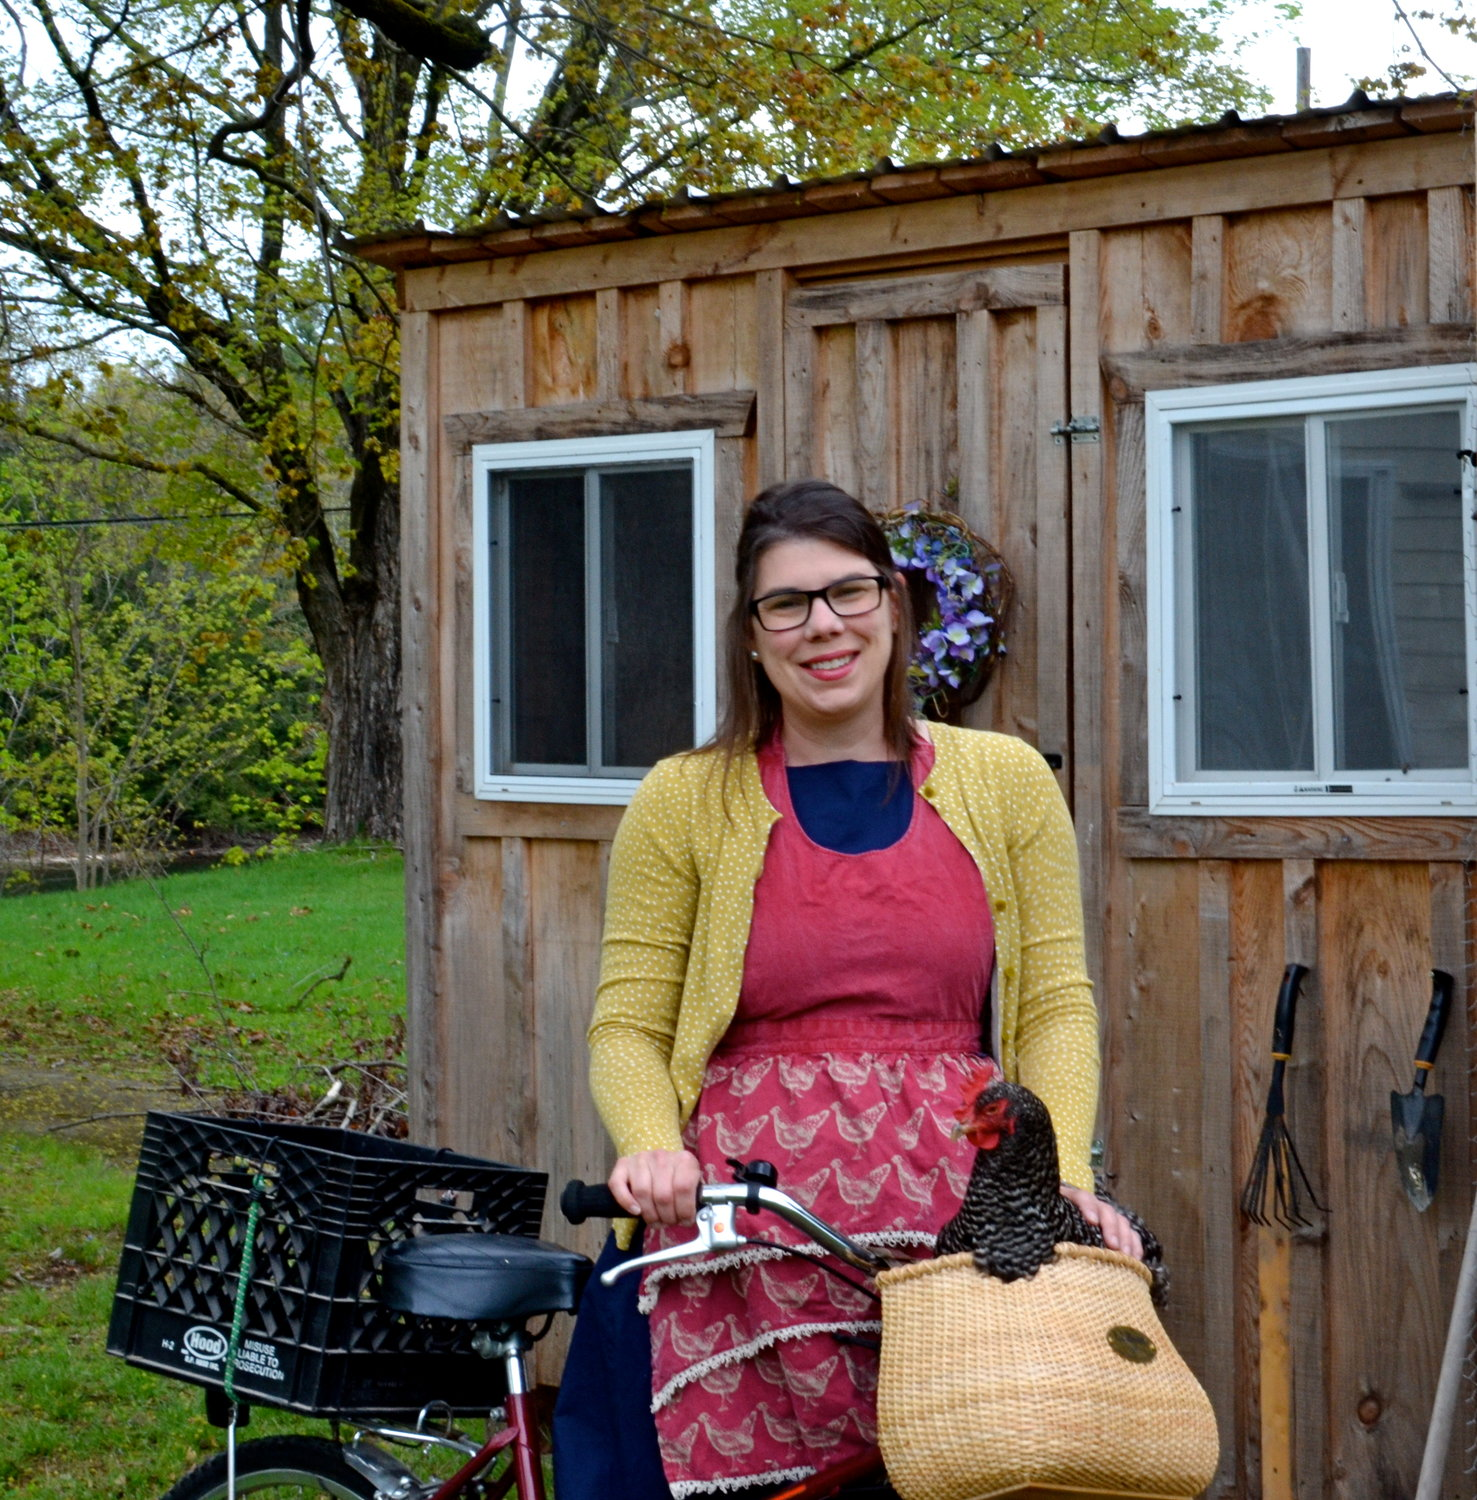 The Chicken Librarian doing what she does best: Trying to get the chickens to pose for pictures. Here is Gertie McGhee, who is not happy with being placed in a bike basket. Chicken Librarian dreams of taking bike rides with chickens while wearing chicken aprons. All in a day's work.